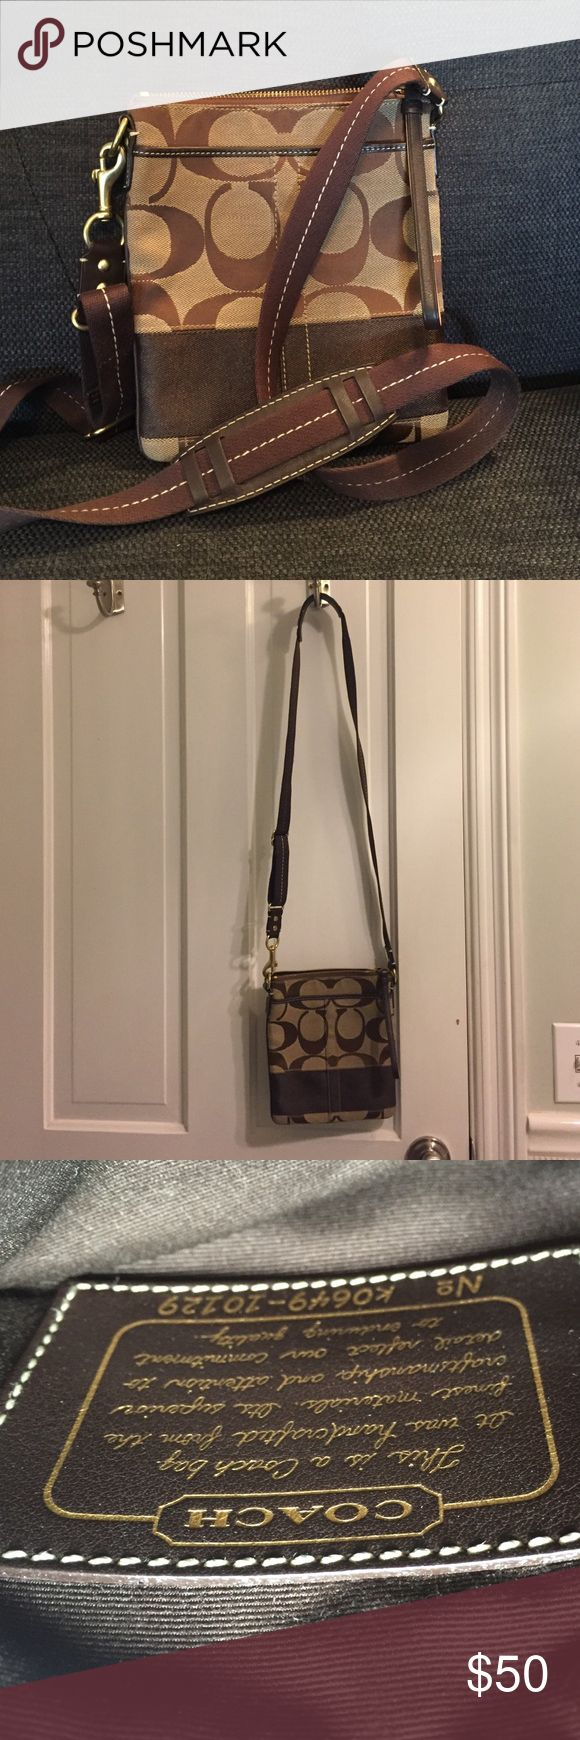 Coach Crossbody Bag Super functional, small sized bag in great condition. Zippered inside pocket and handy outer pocket for keys or phone. Canvas with leather trim, adjustable strap. Coach Bags Crossbody Bags